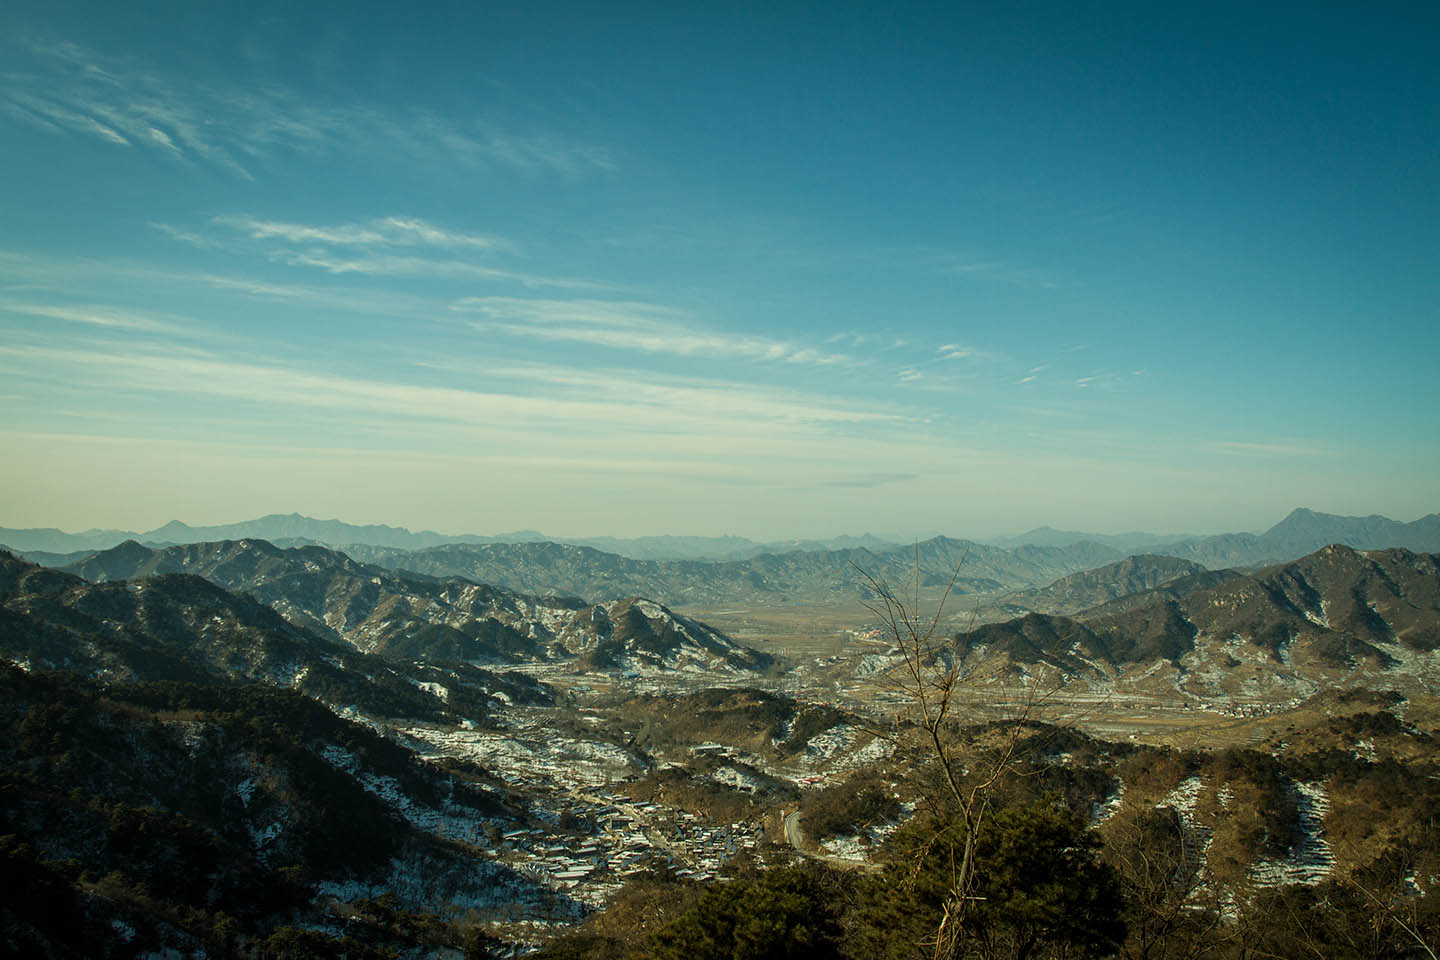 View from the Great Wall of China / Ausblick von der chinesische Mauer